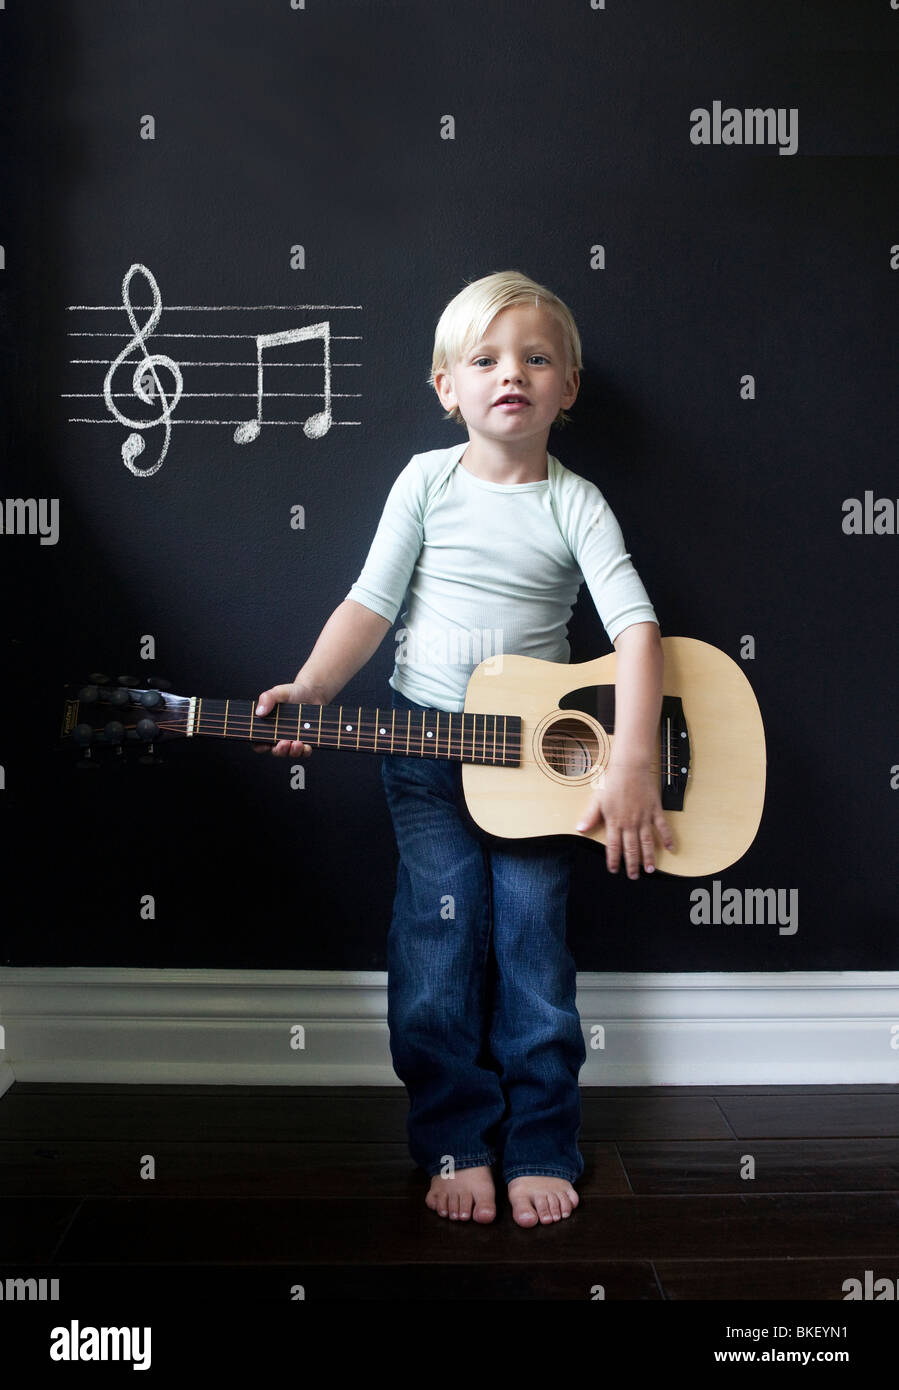 Young musician with acoustic guitar - Stock Image